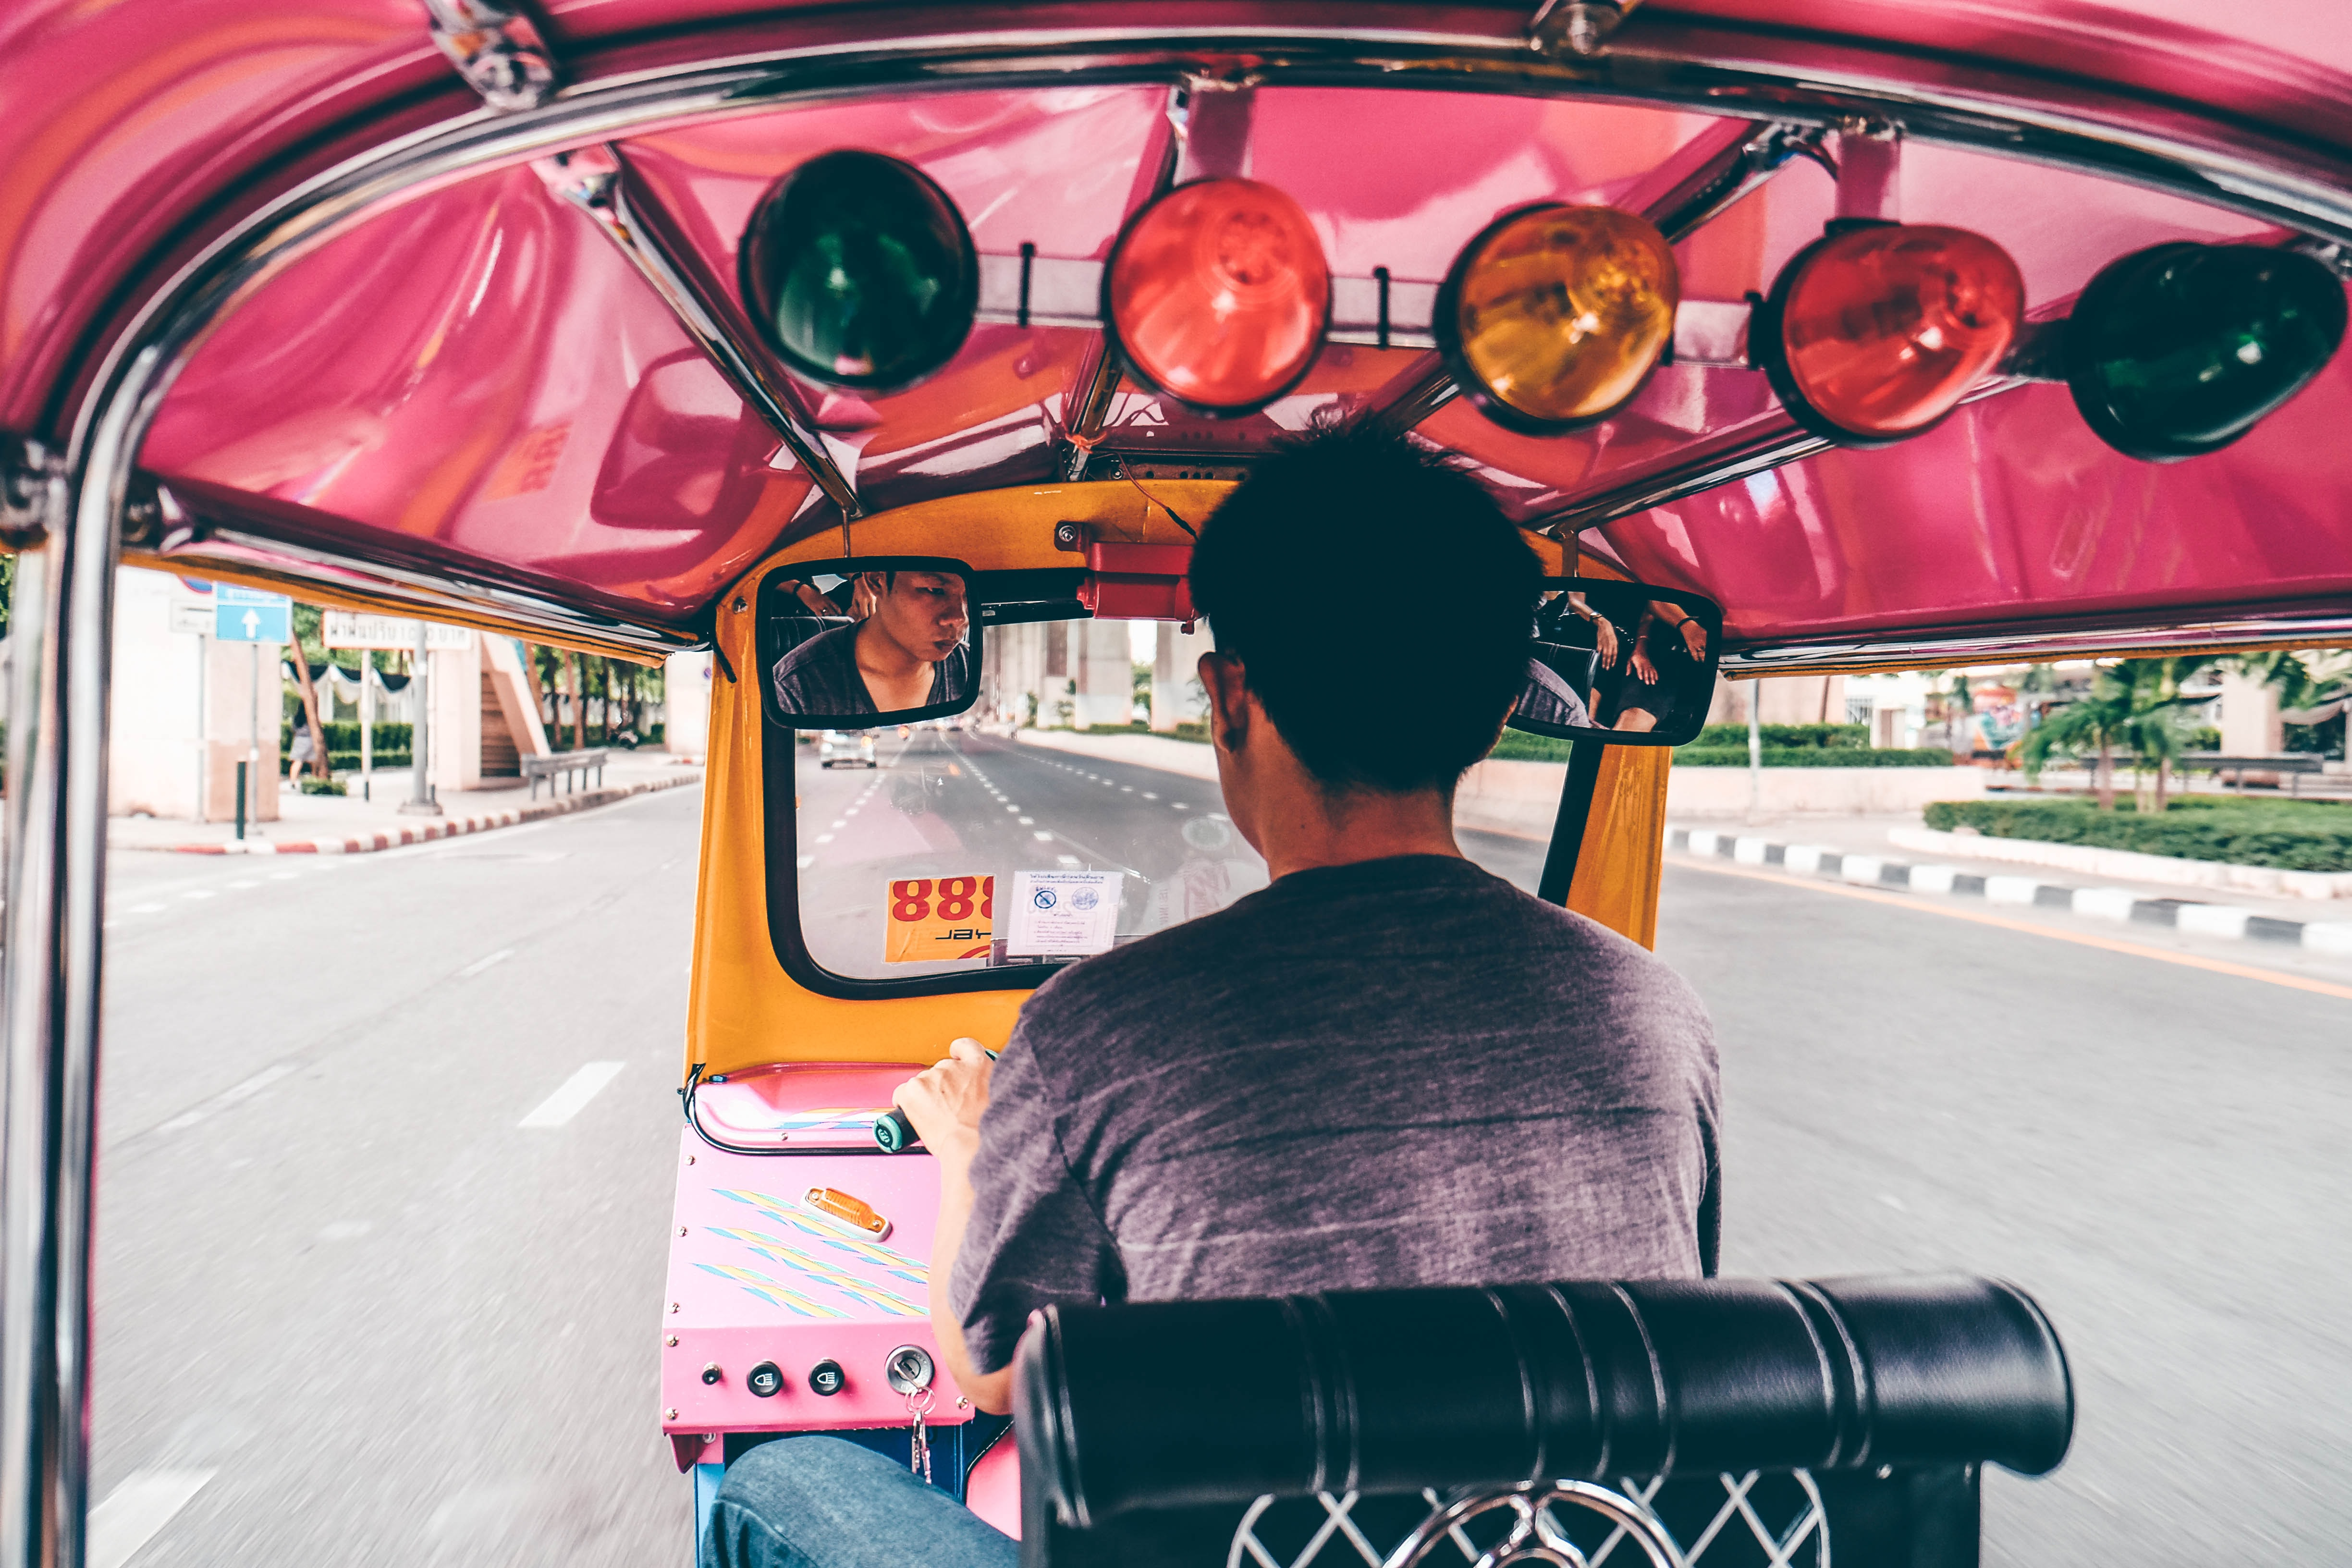 Pink Tuk Tuks Deliver Food - and Conversation - During Pandemic